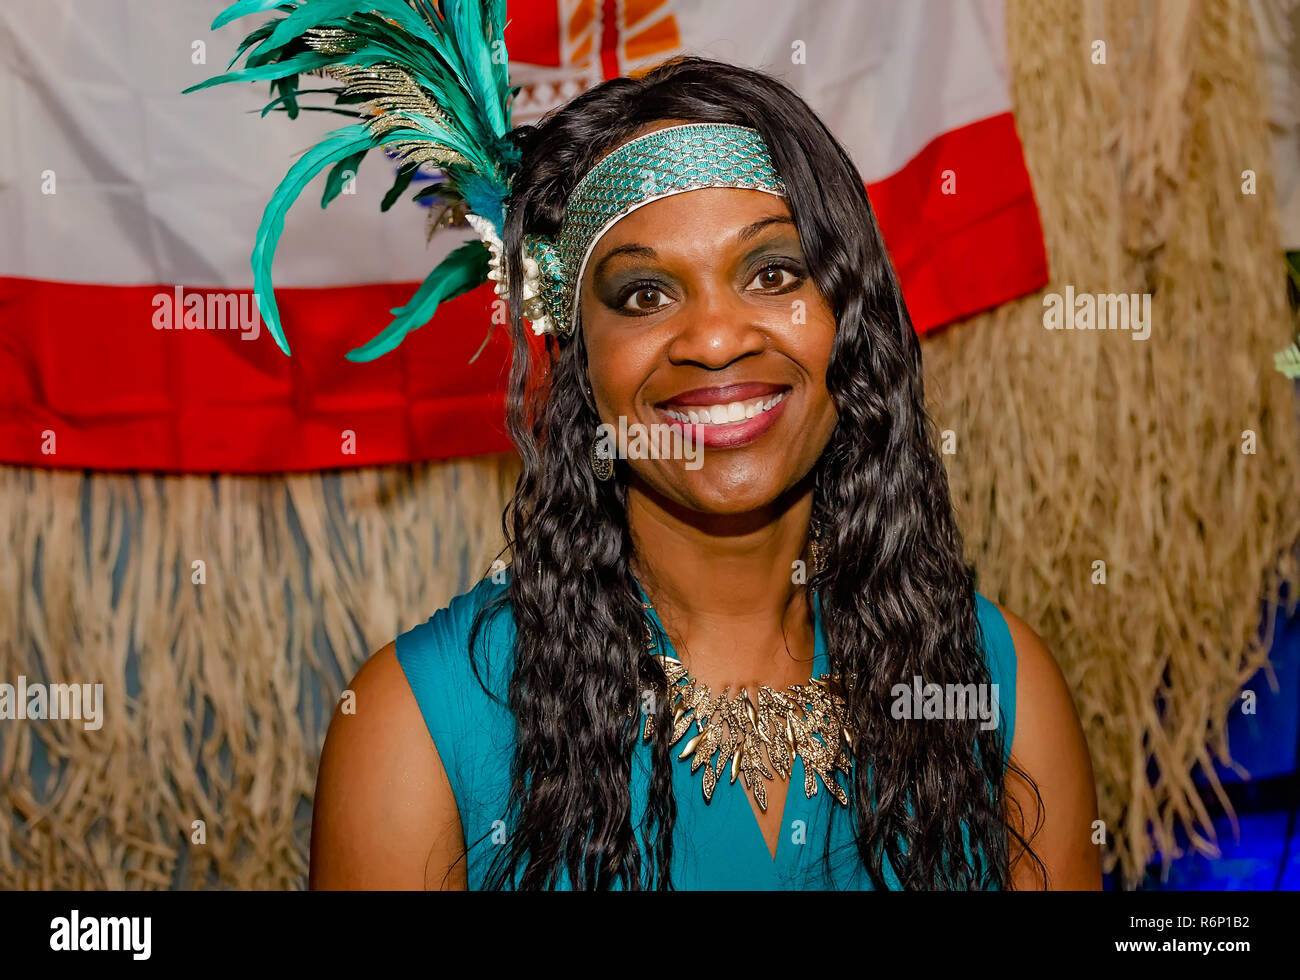 A Polynesian woman wears a Tahitian headdress at the 34th annual Mobile International Festival, Nov. 17, 2018, in Mobile, Alabama. - Stock Image